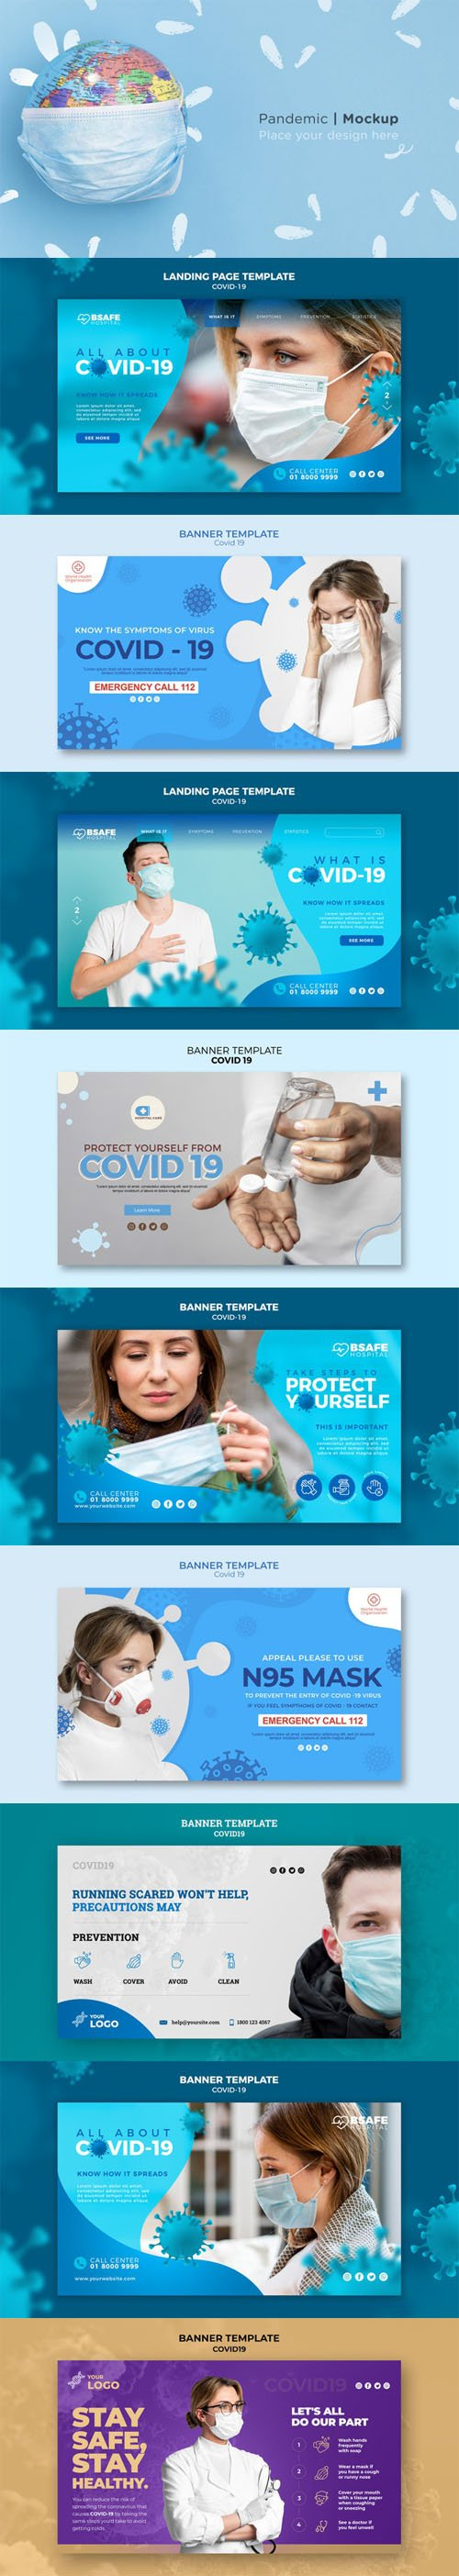 10 Covid-19 Concept Banners PSD Templates